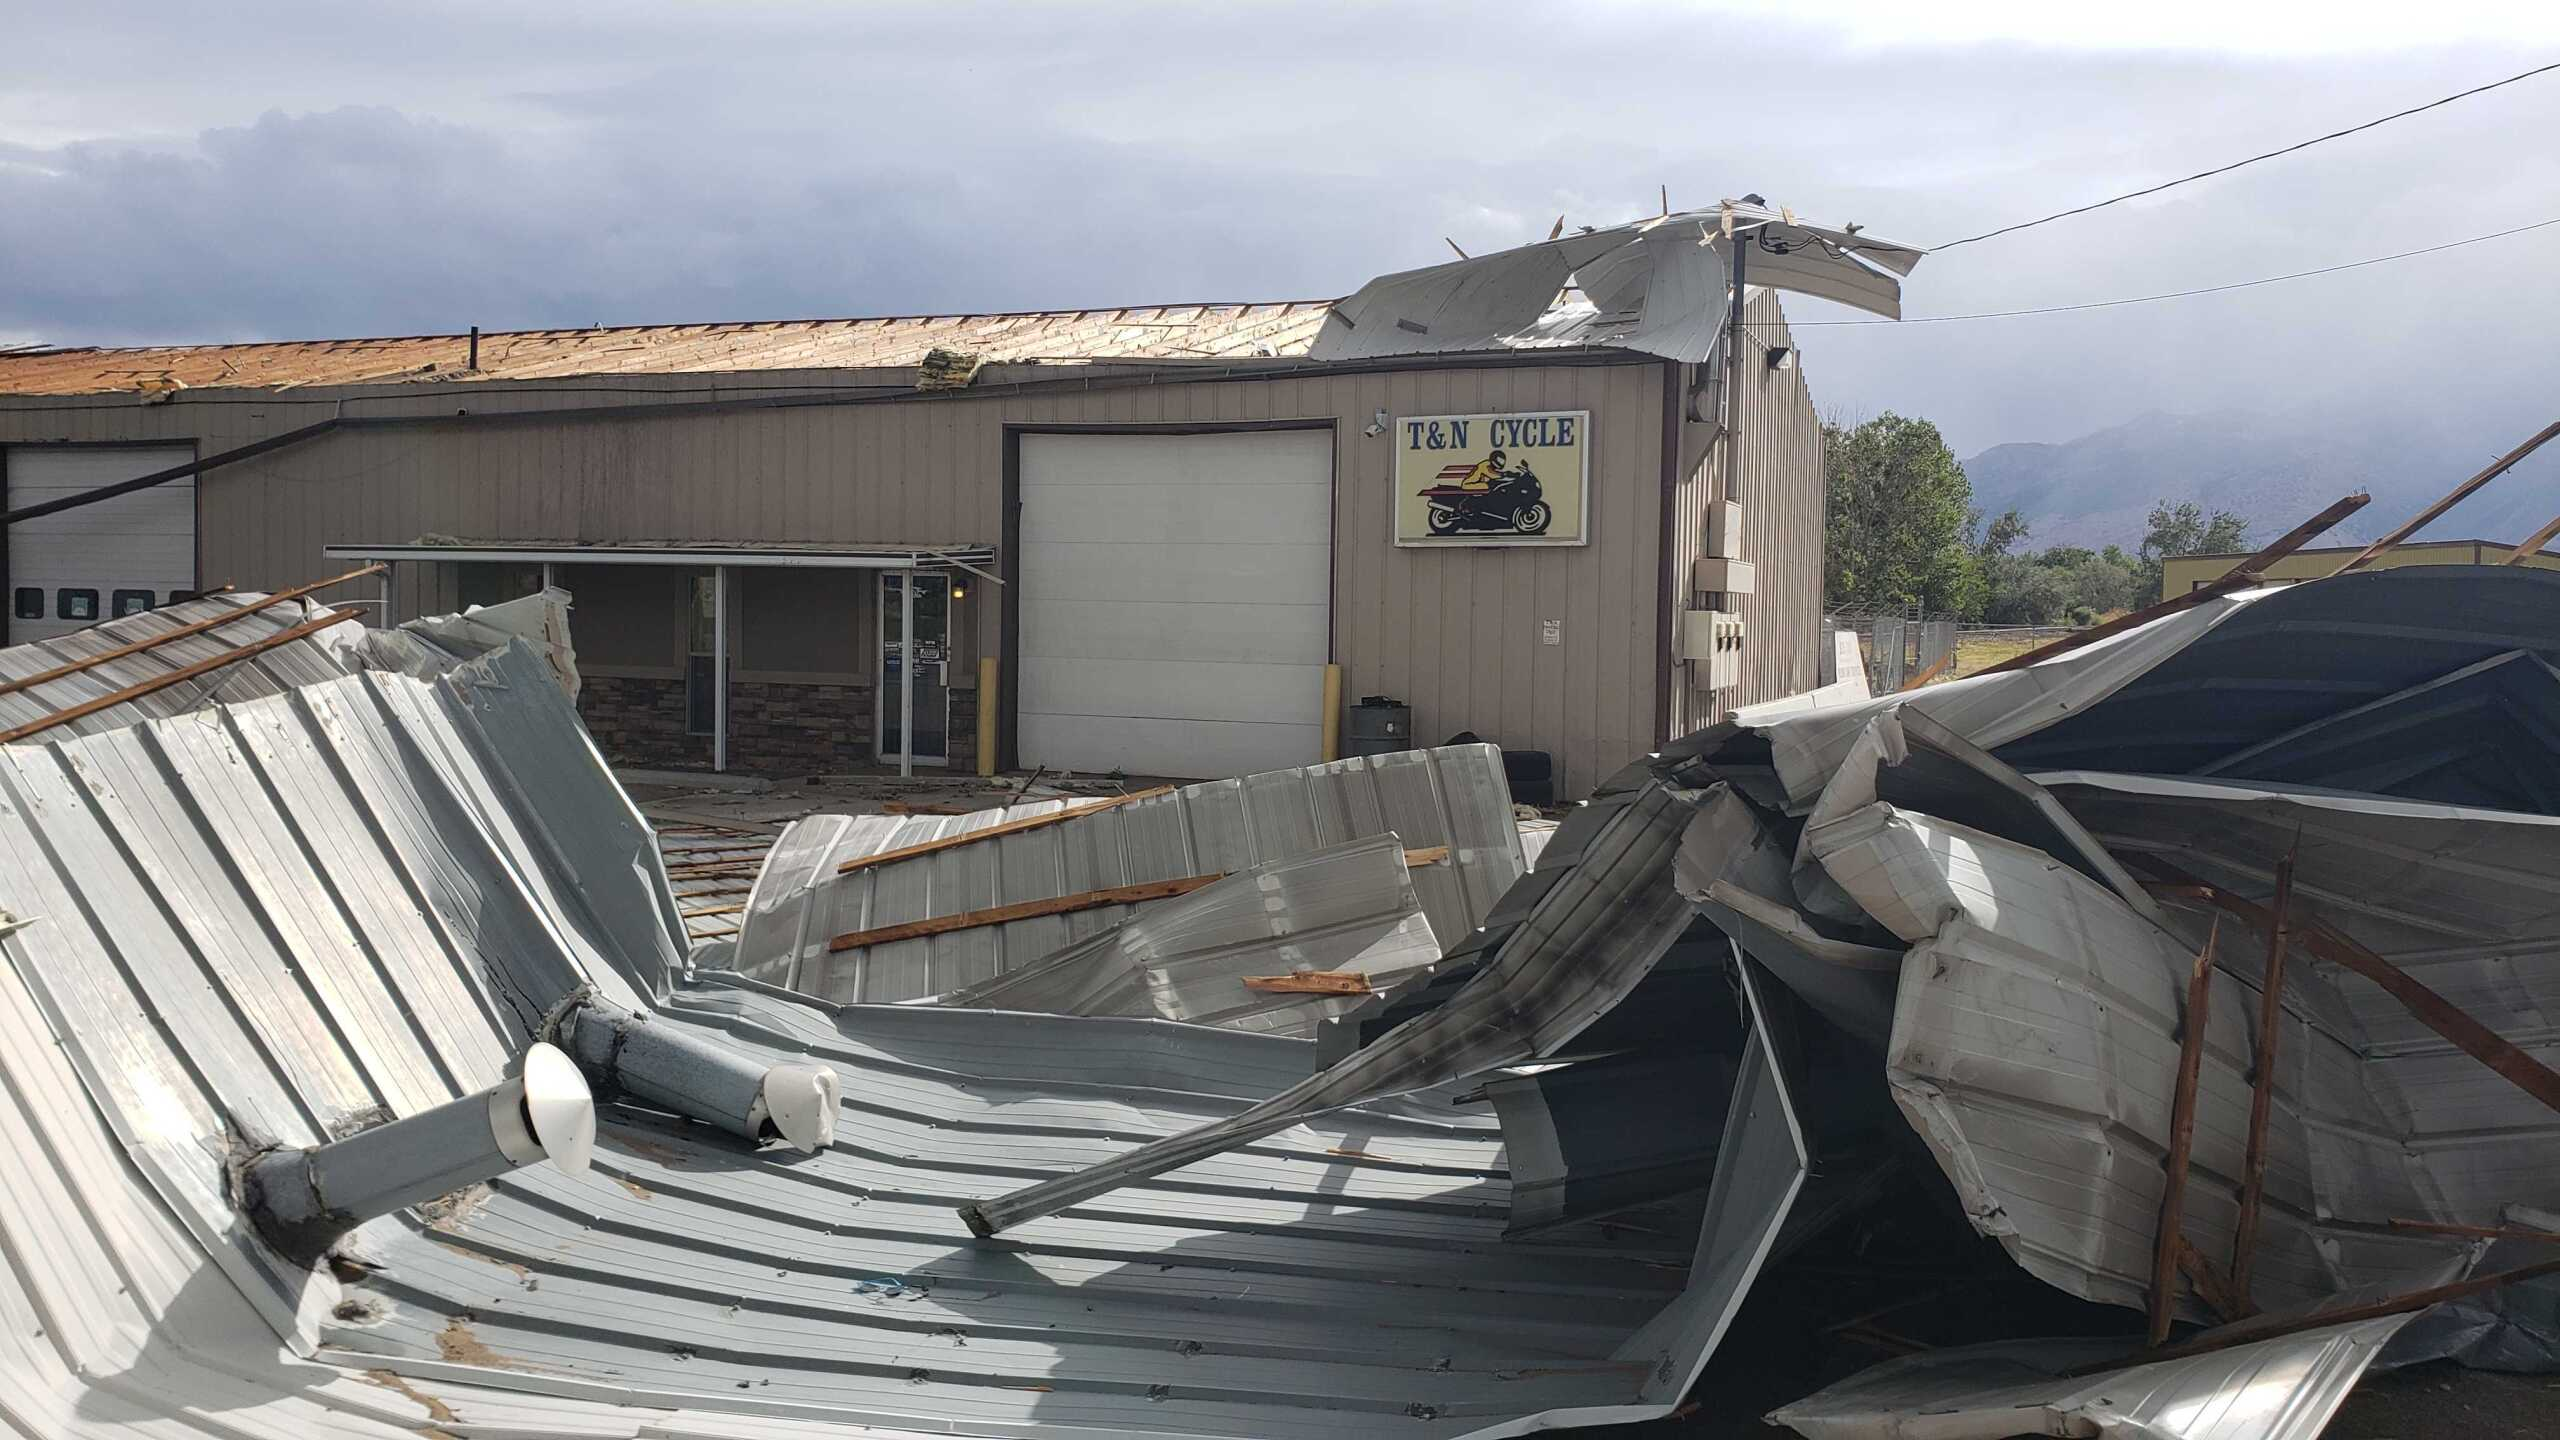 Roof ripped off T and N Cycle in Ogden.jpg